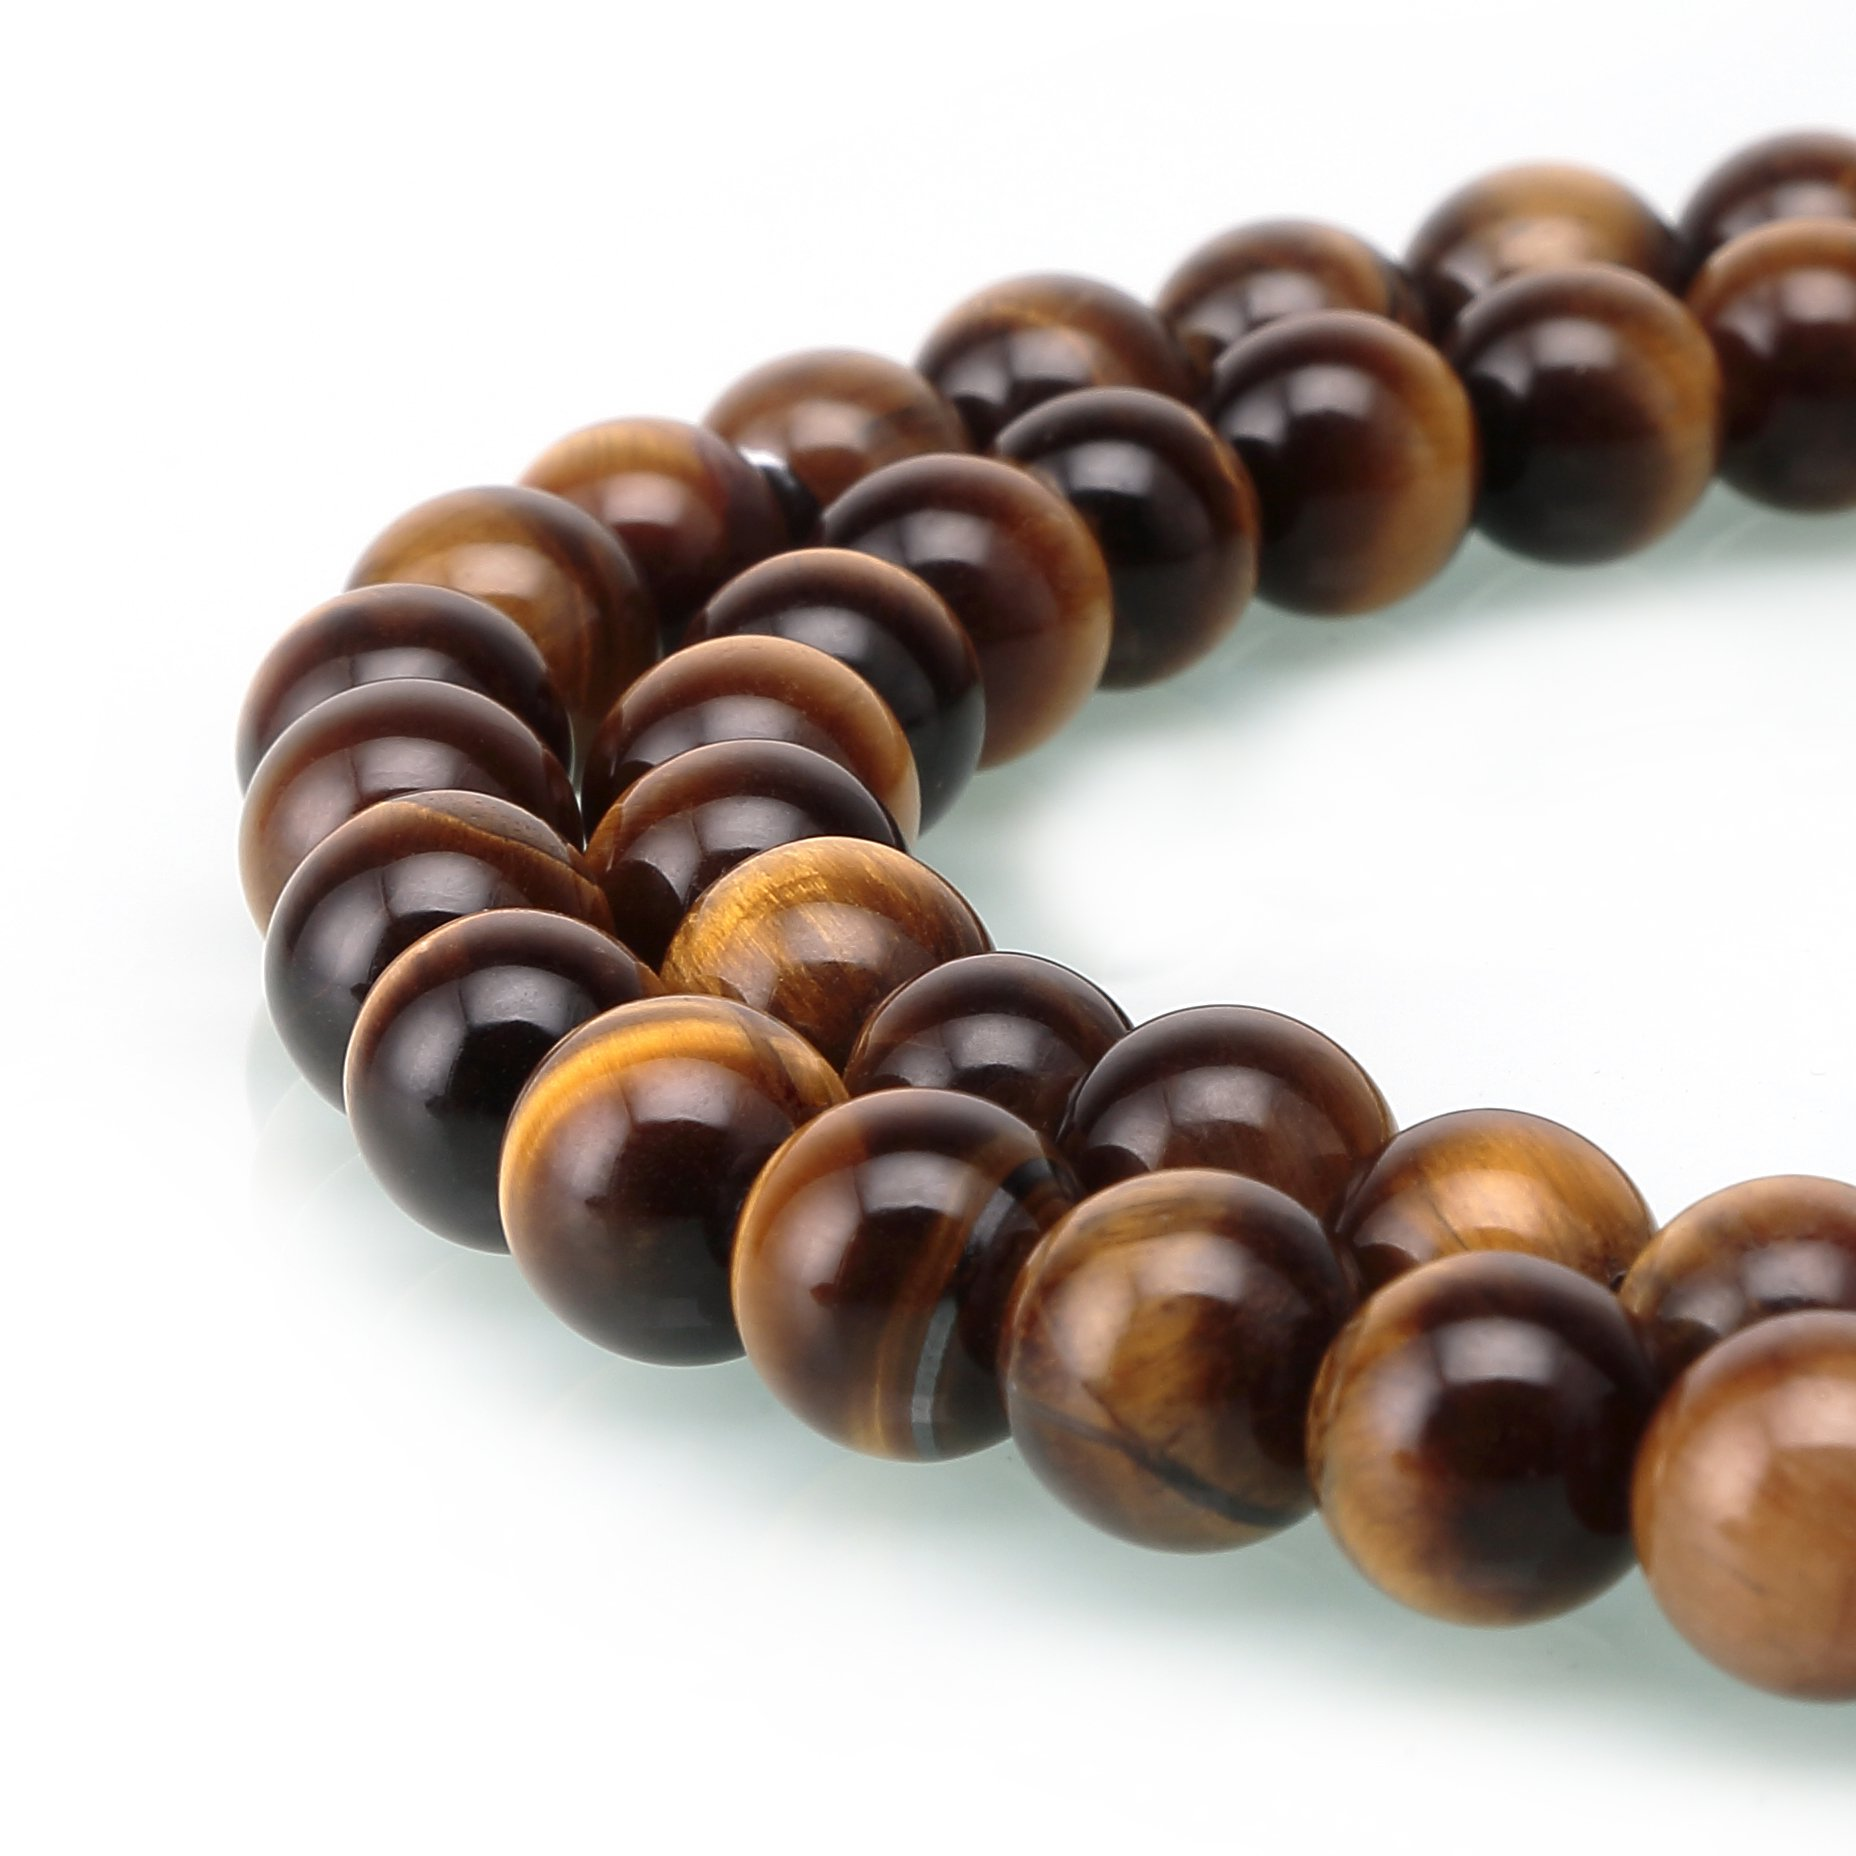 BRCbeads Tiger Eye A Grade Gemstone Loose Beads Natural Round 10mm Crystal Energy Stone Healing Power for Jewelry Making- Yellow